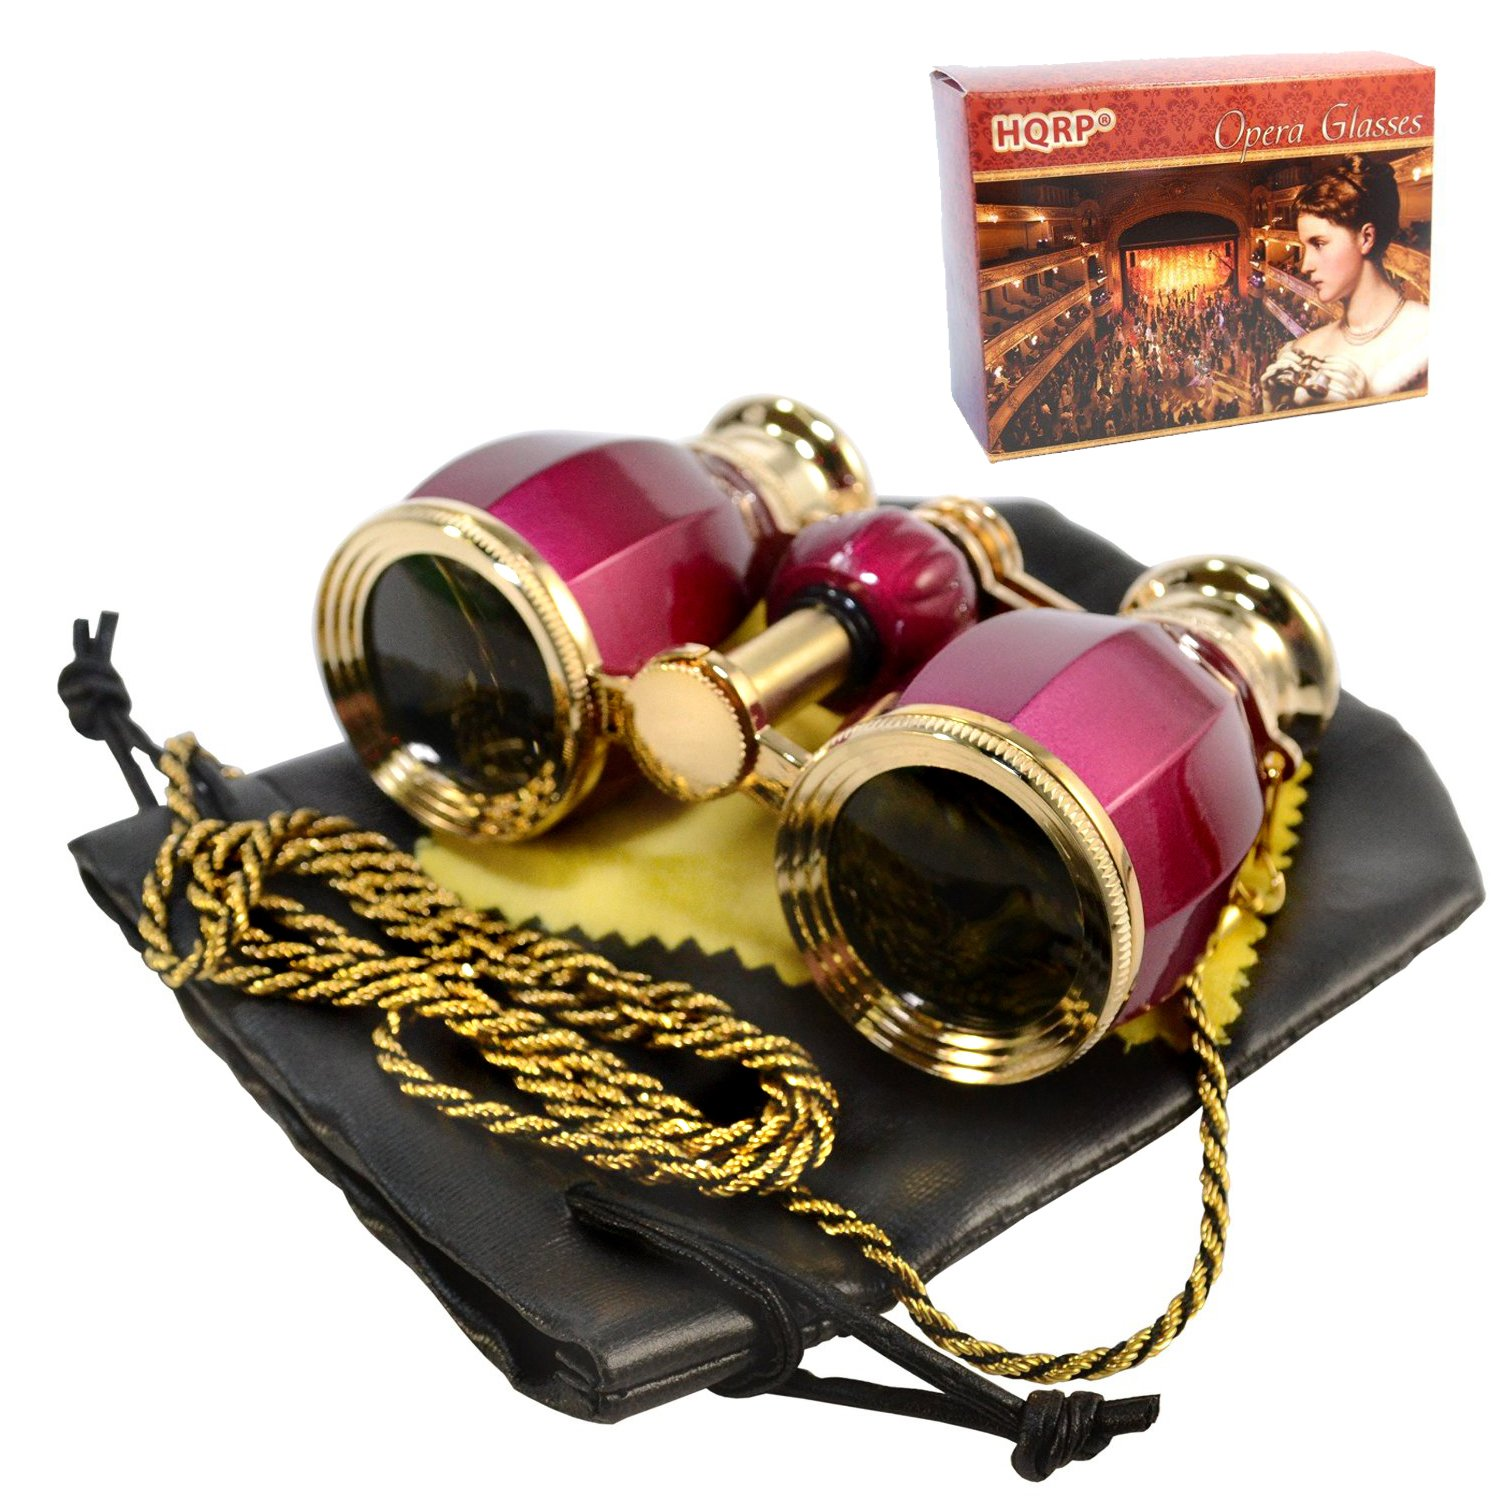 HQRP Opera Glasses Antique Style in Elegant Red Color with Gold Trim w/ Crystal Clear Optics (CCO) w/ Chain